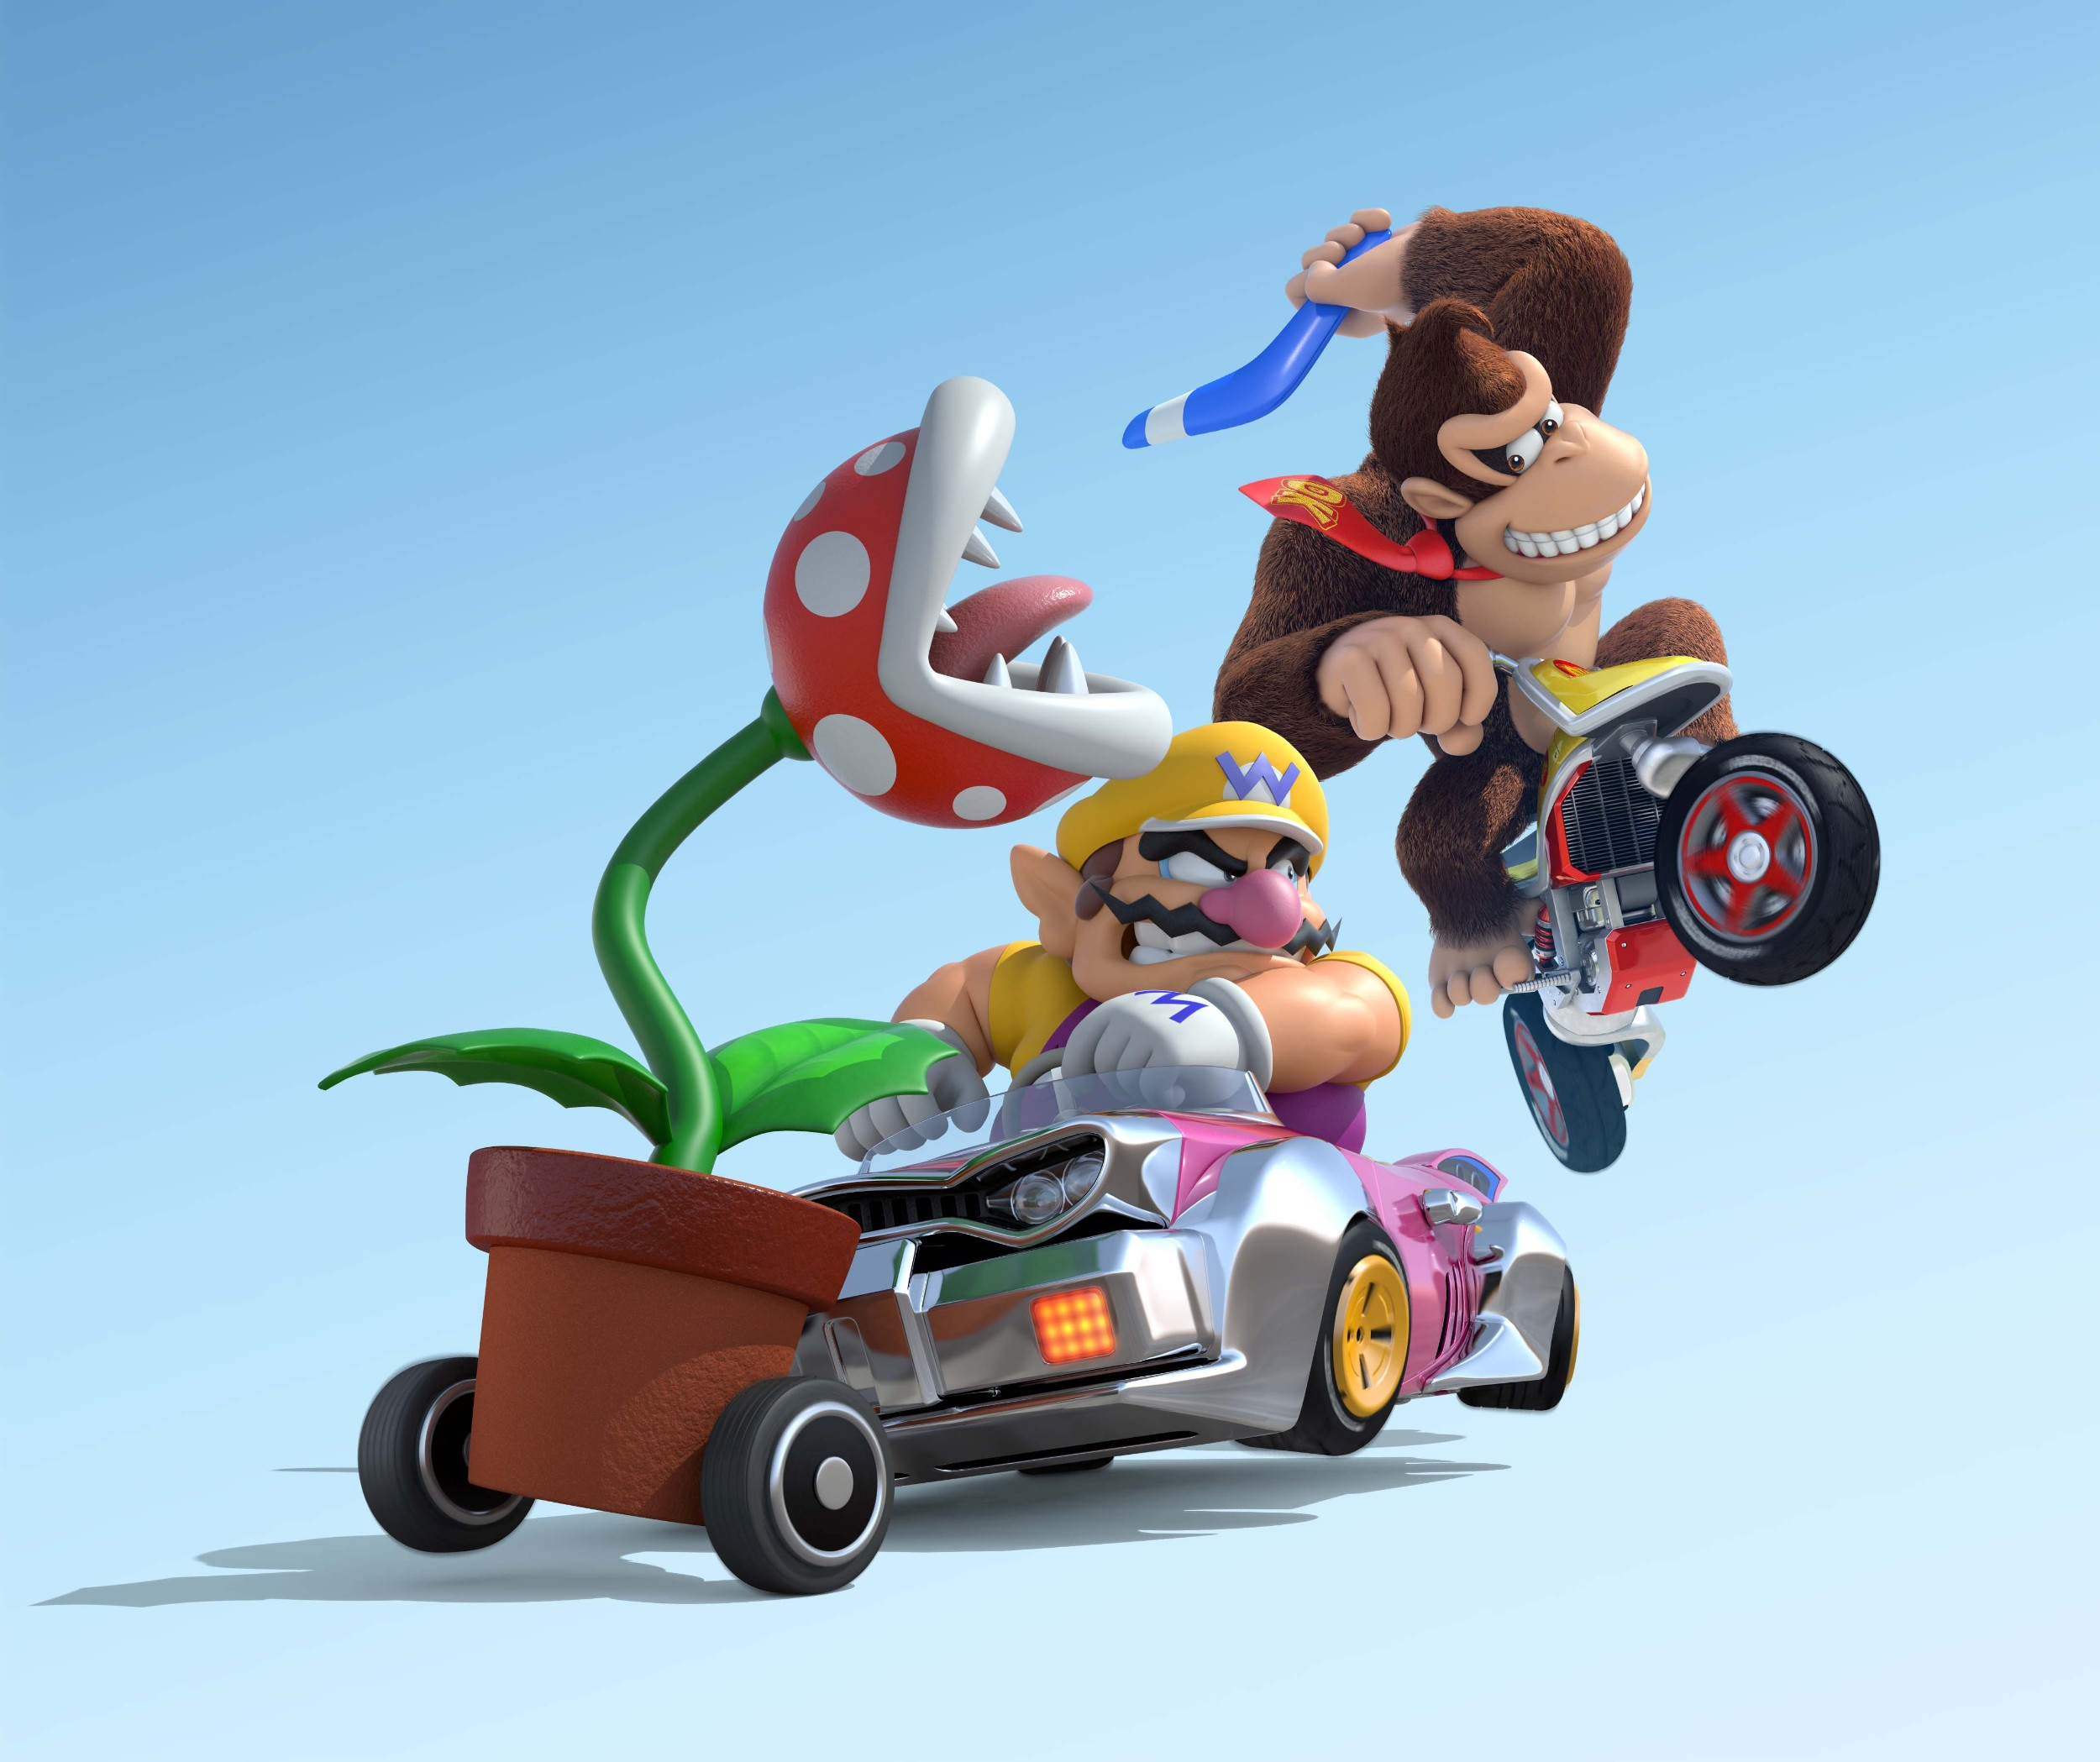 mario kart 8 nouveaux objets personnages et circuits lightningamer. Black Bedroom Furniture Sets. Home Design Ideas